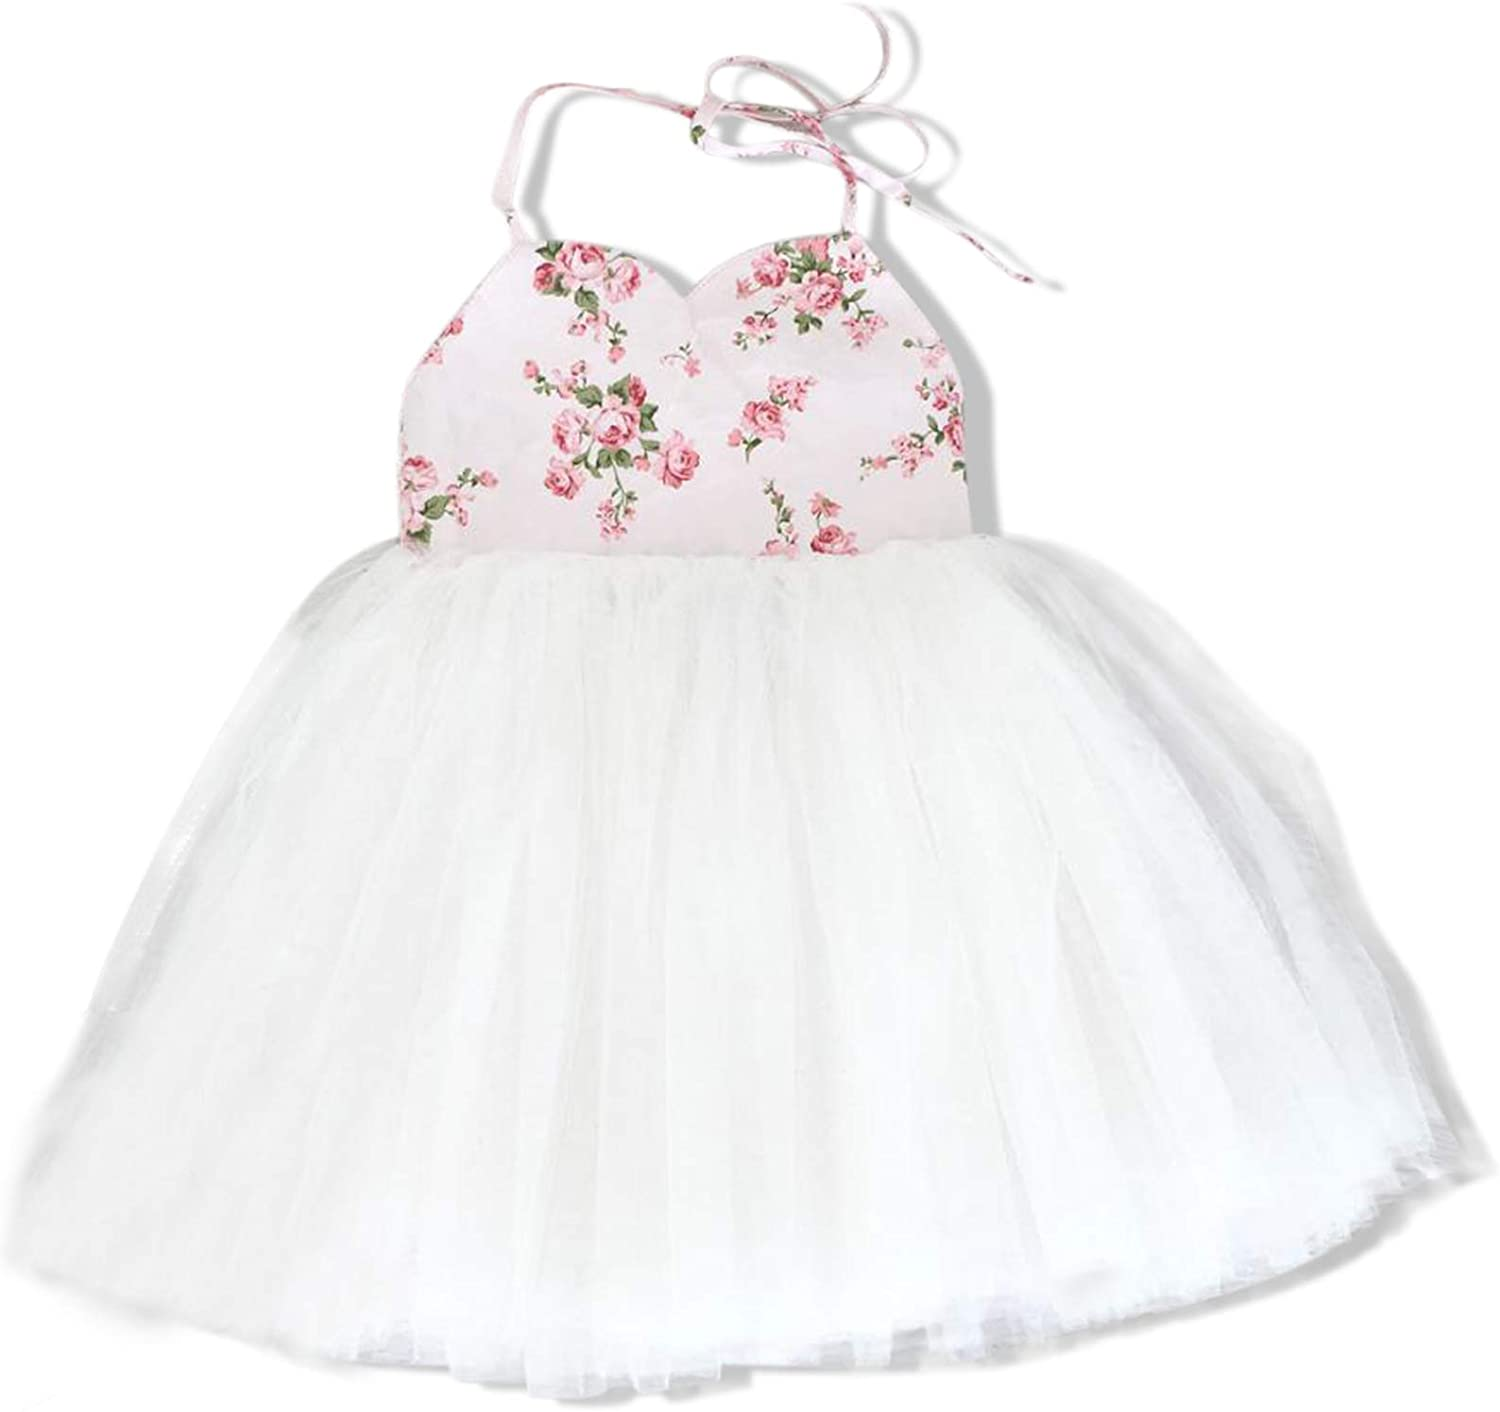 Toddler Girl Dress Outfits Baby Girls Onepiece Floral Wedding Tutu Dress Infant Tulle Party Sleeveless Sundress